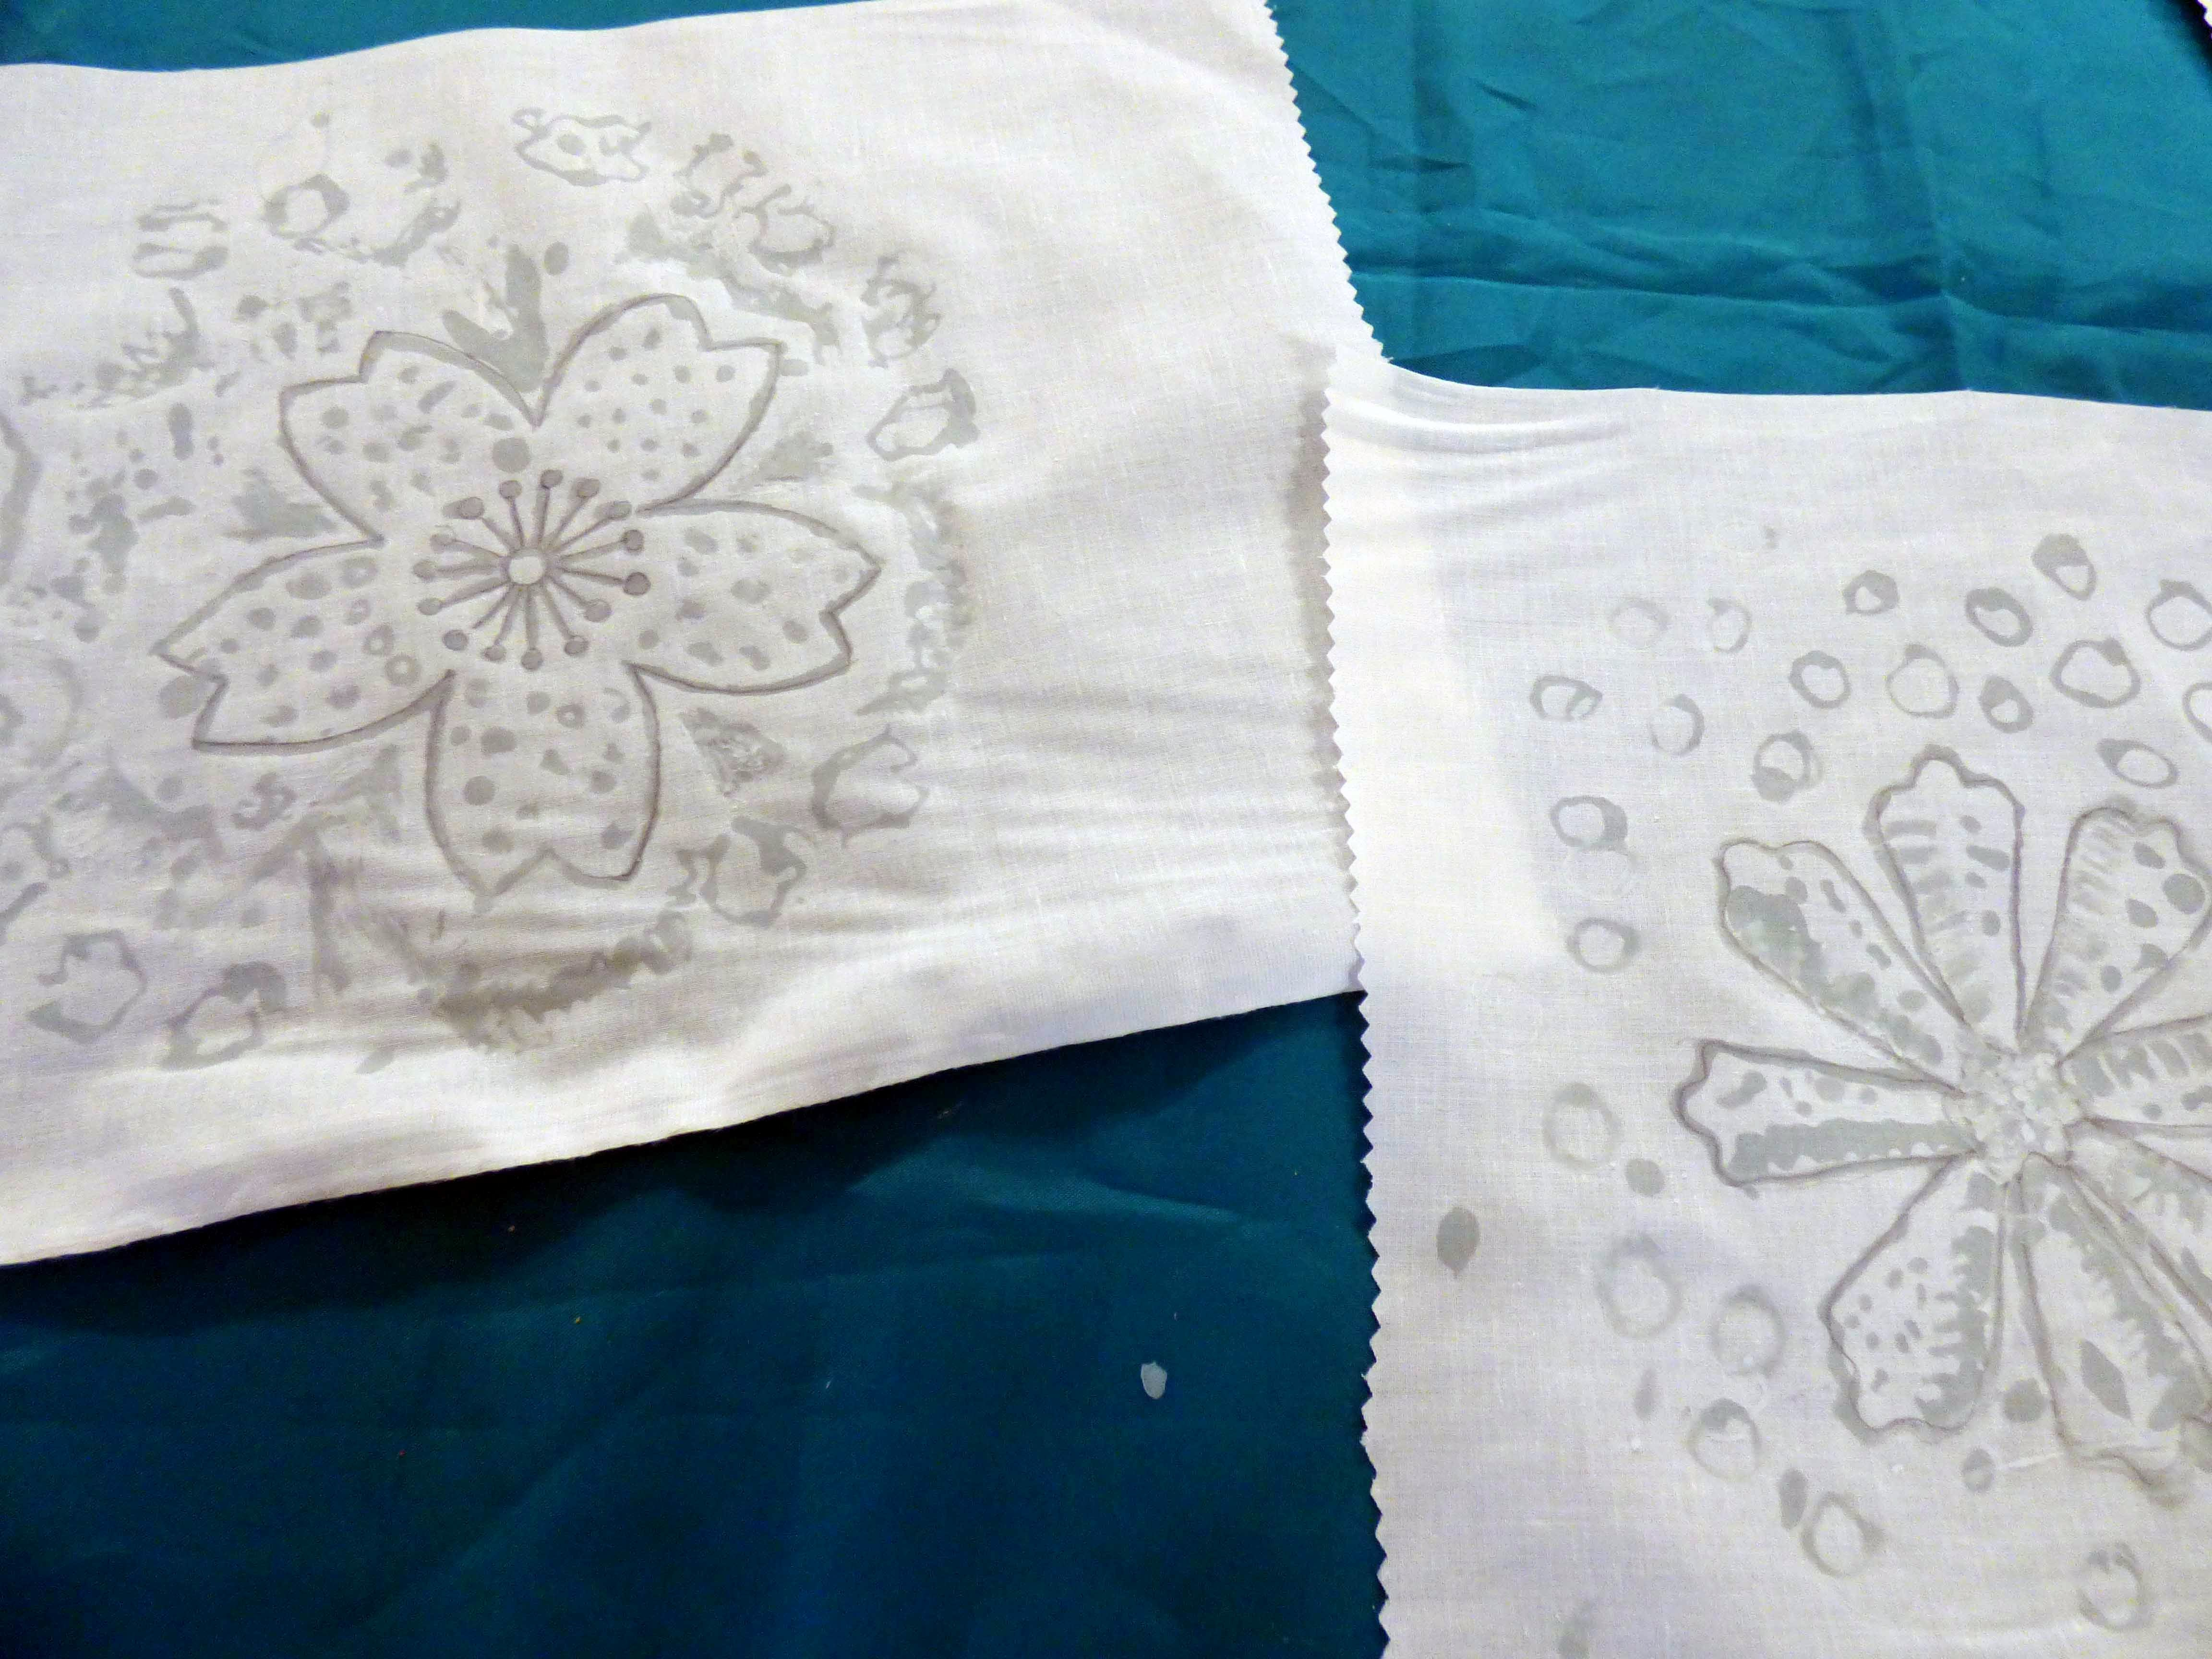 """student's work with wax applied at  """"A Taste of Indonesian Batik"""" workshop with Victoria Riley, Feb 2020"""